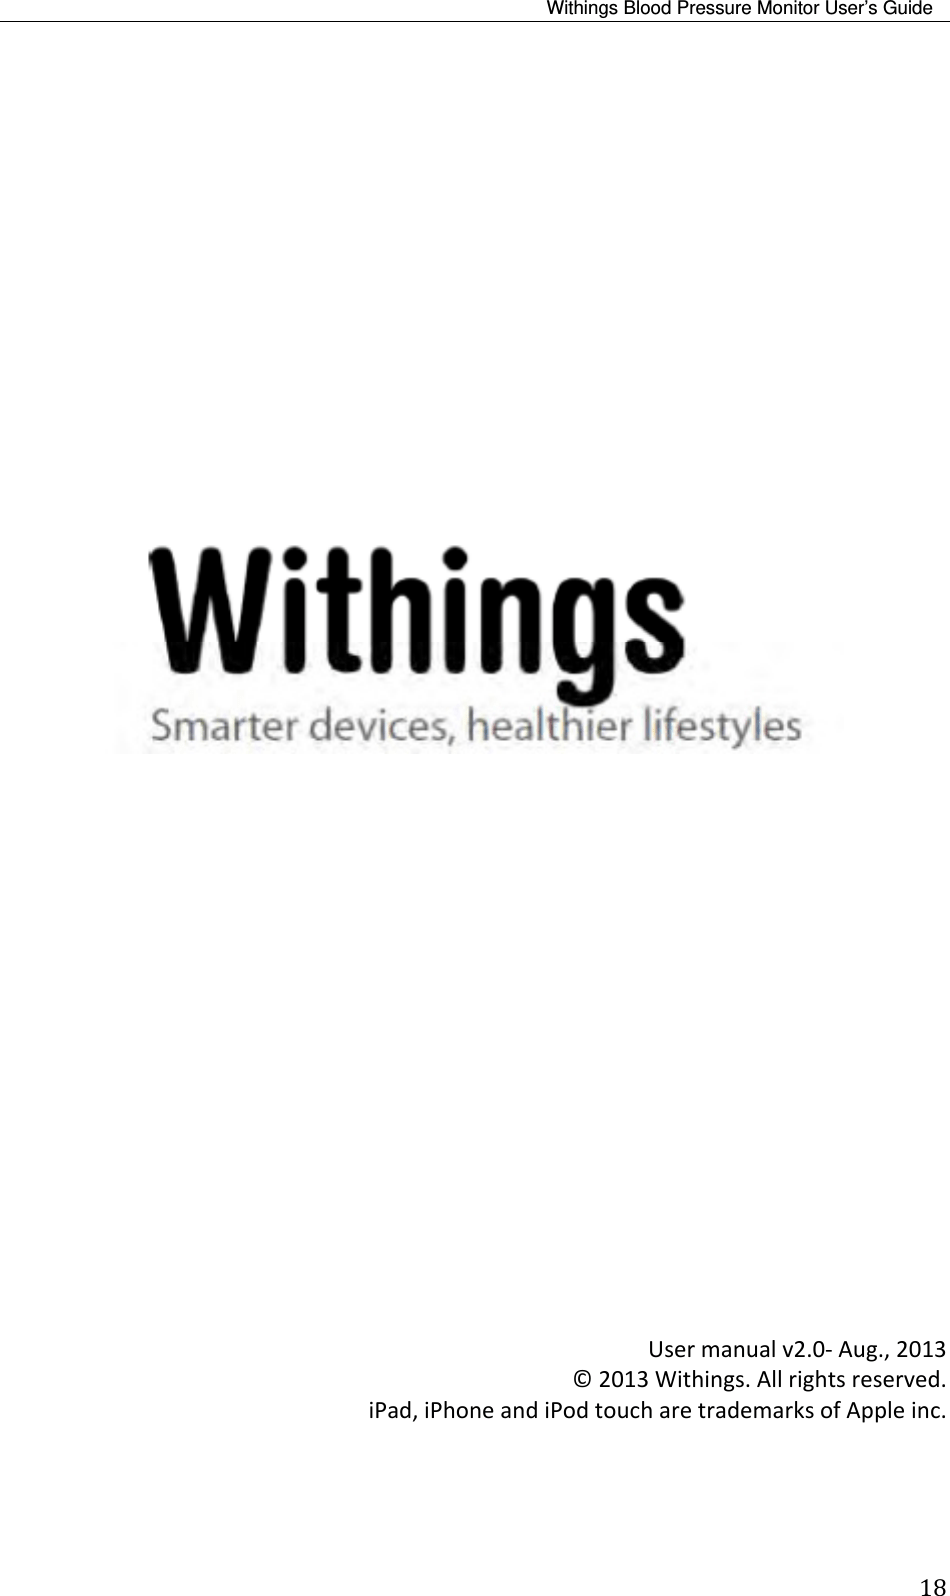 Withings WPM02 Blood Pressure Monitor User Manual 20130826